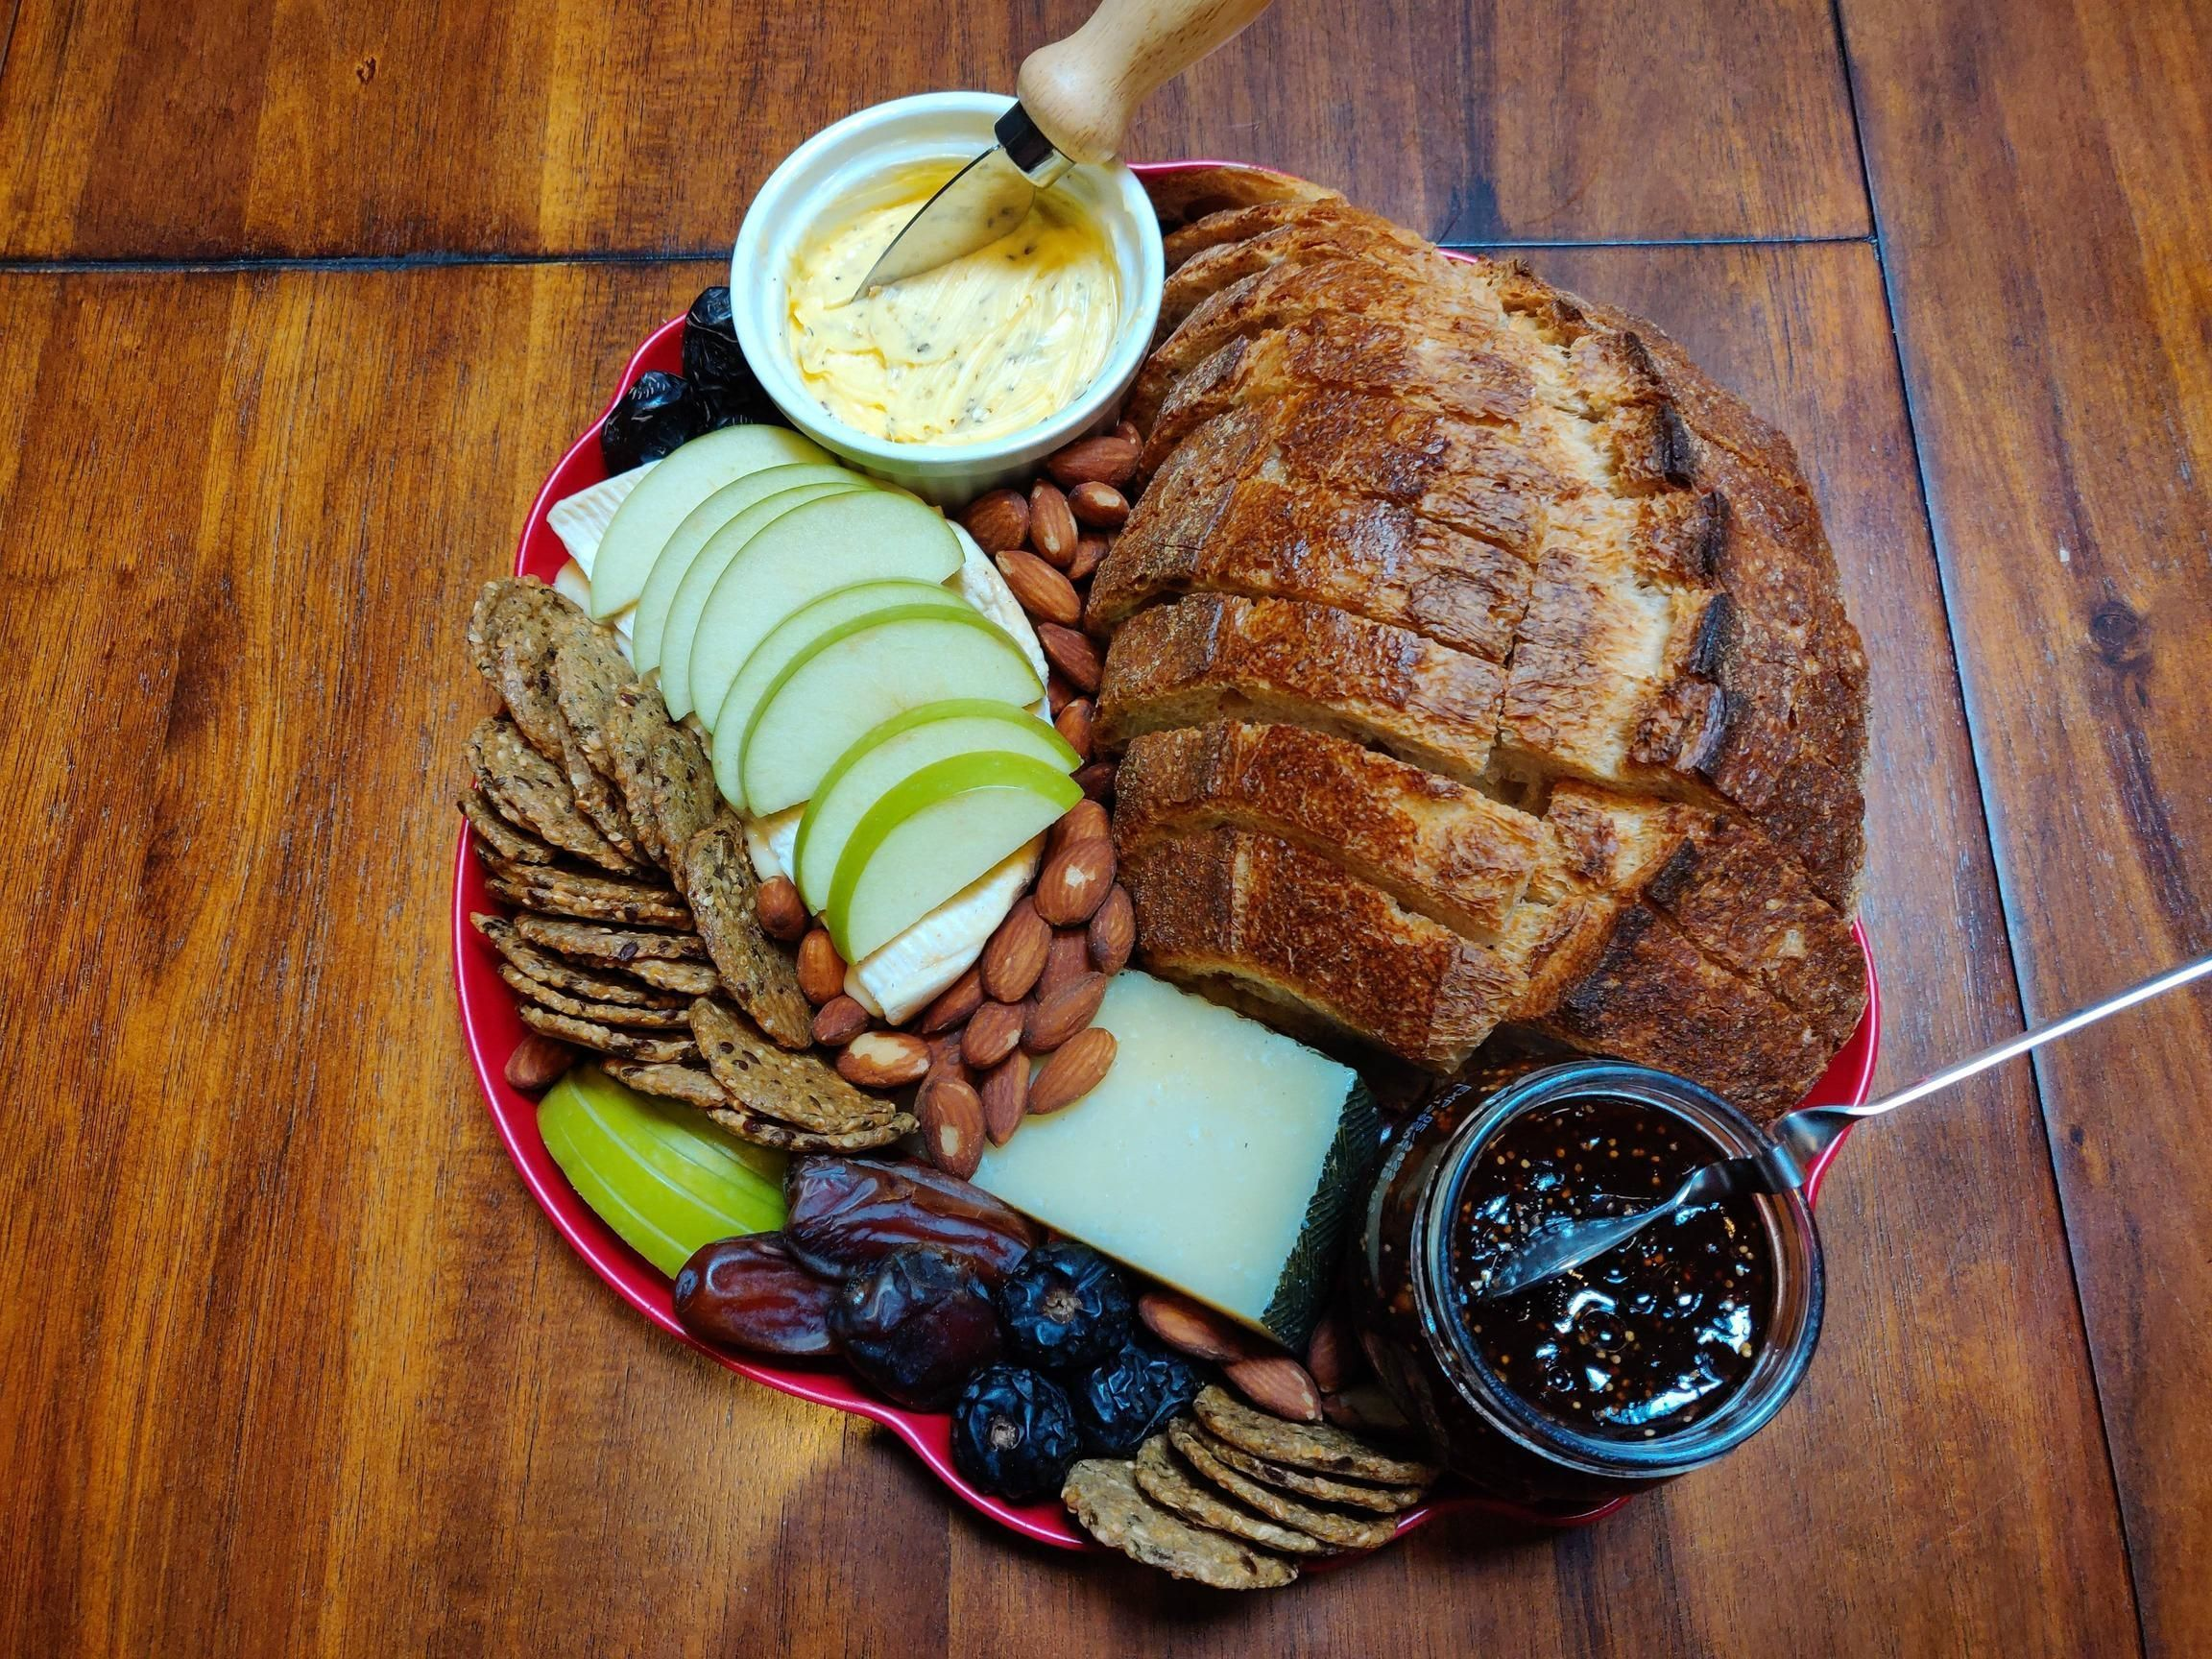 I made a cheese board with homemade butter for Friendsgiving I made a cheese board with homemade butter for Friendsgiving I made a cheese board with homemade butter for F...